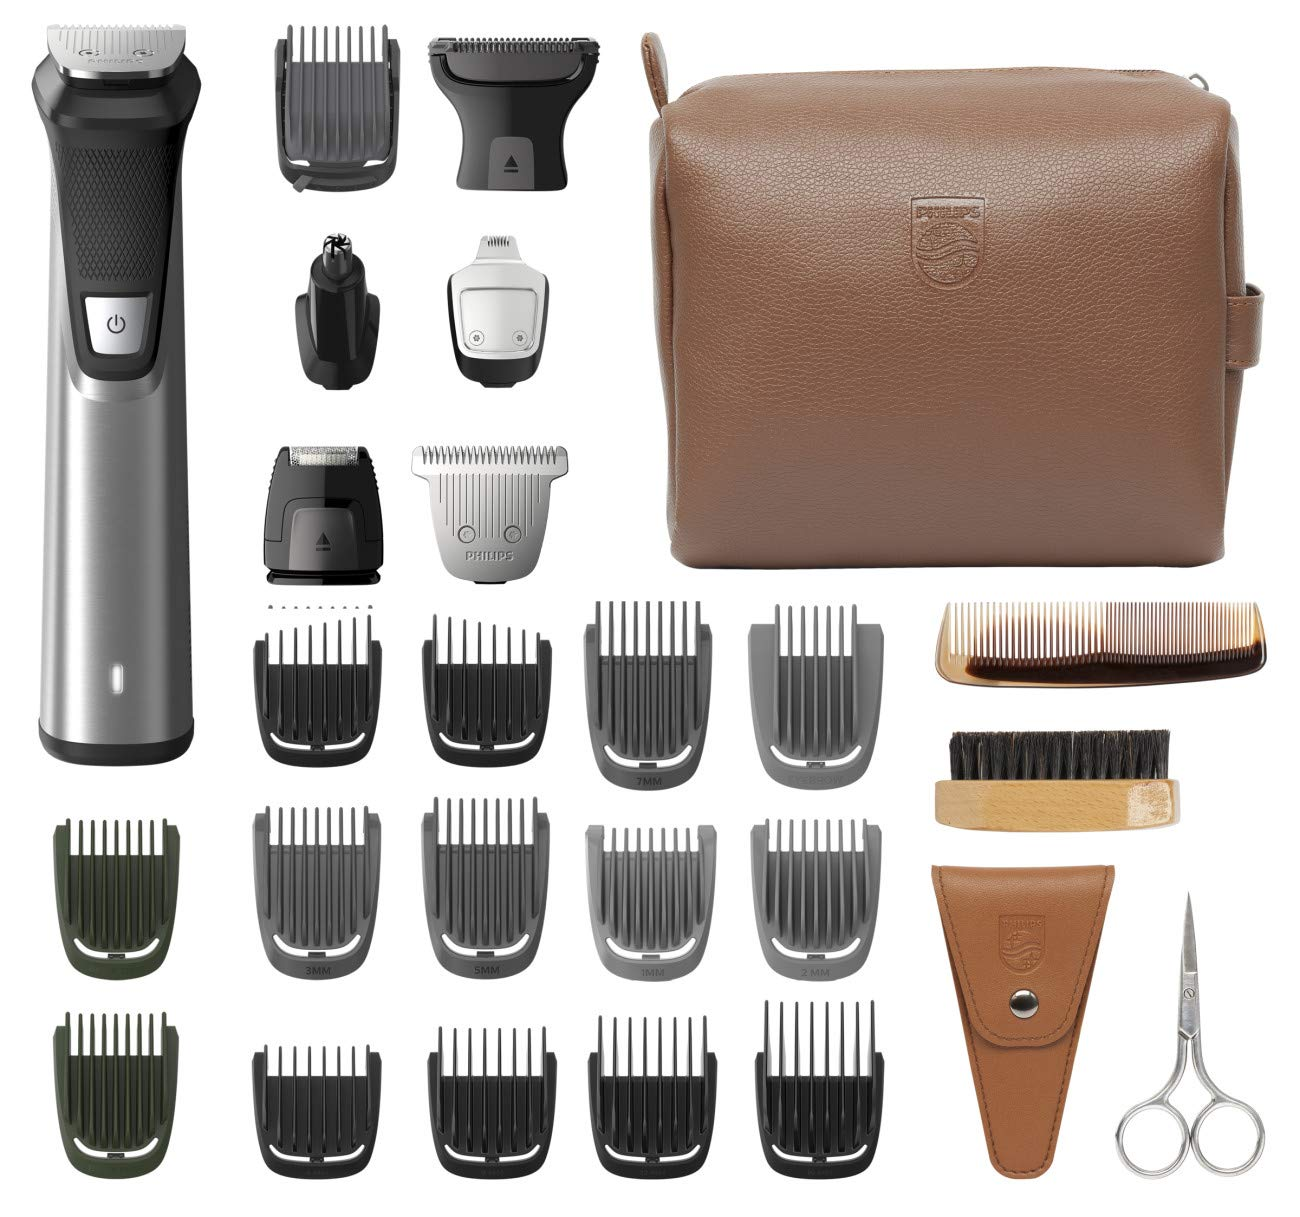 Philips Norelco Multi Groomer MG7791/40 29 Piece Mens Grooming Kit, Trimmer for Beard, Head, Body, and Face - NO BLADE OIL NEEDED by Philips Norelco